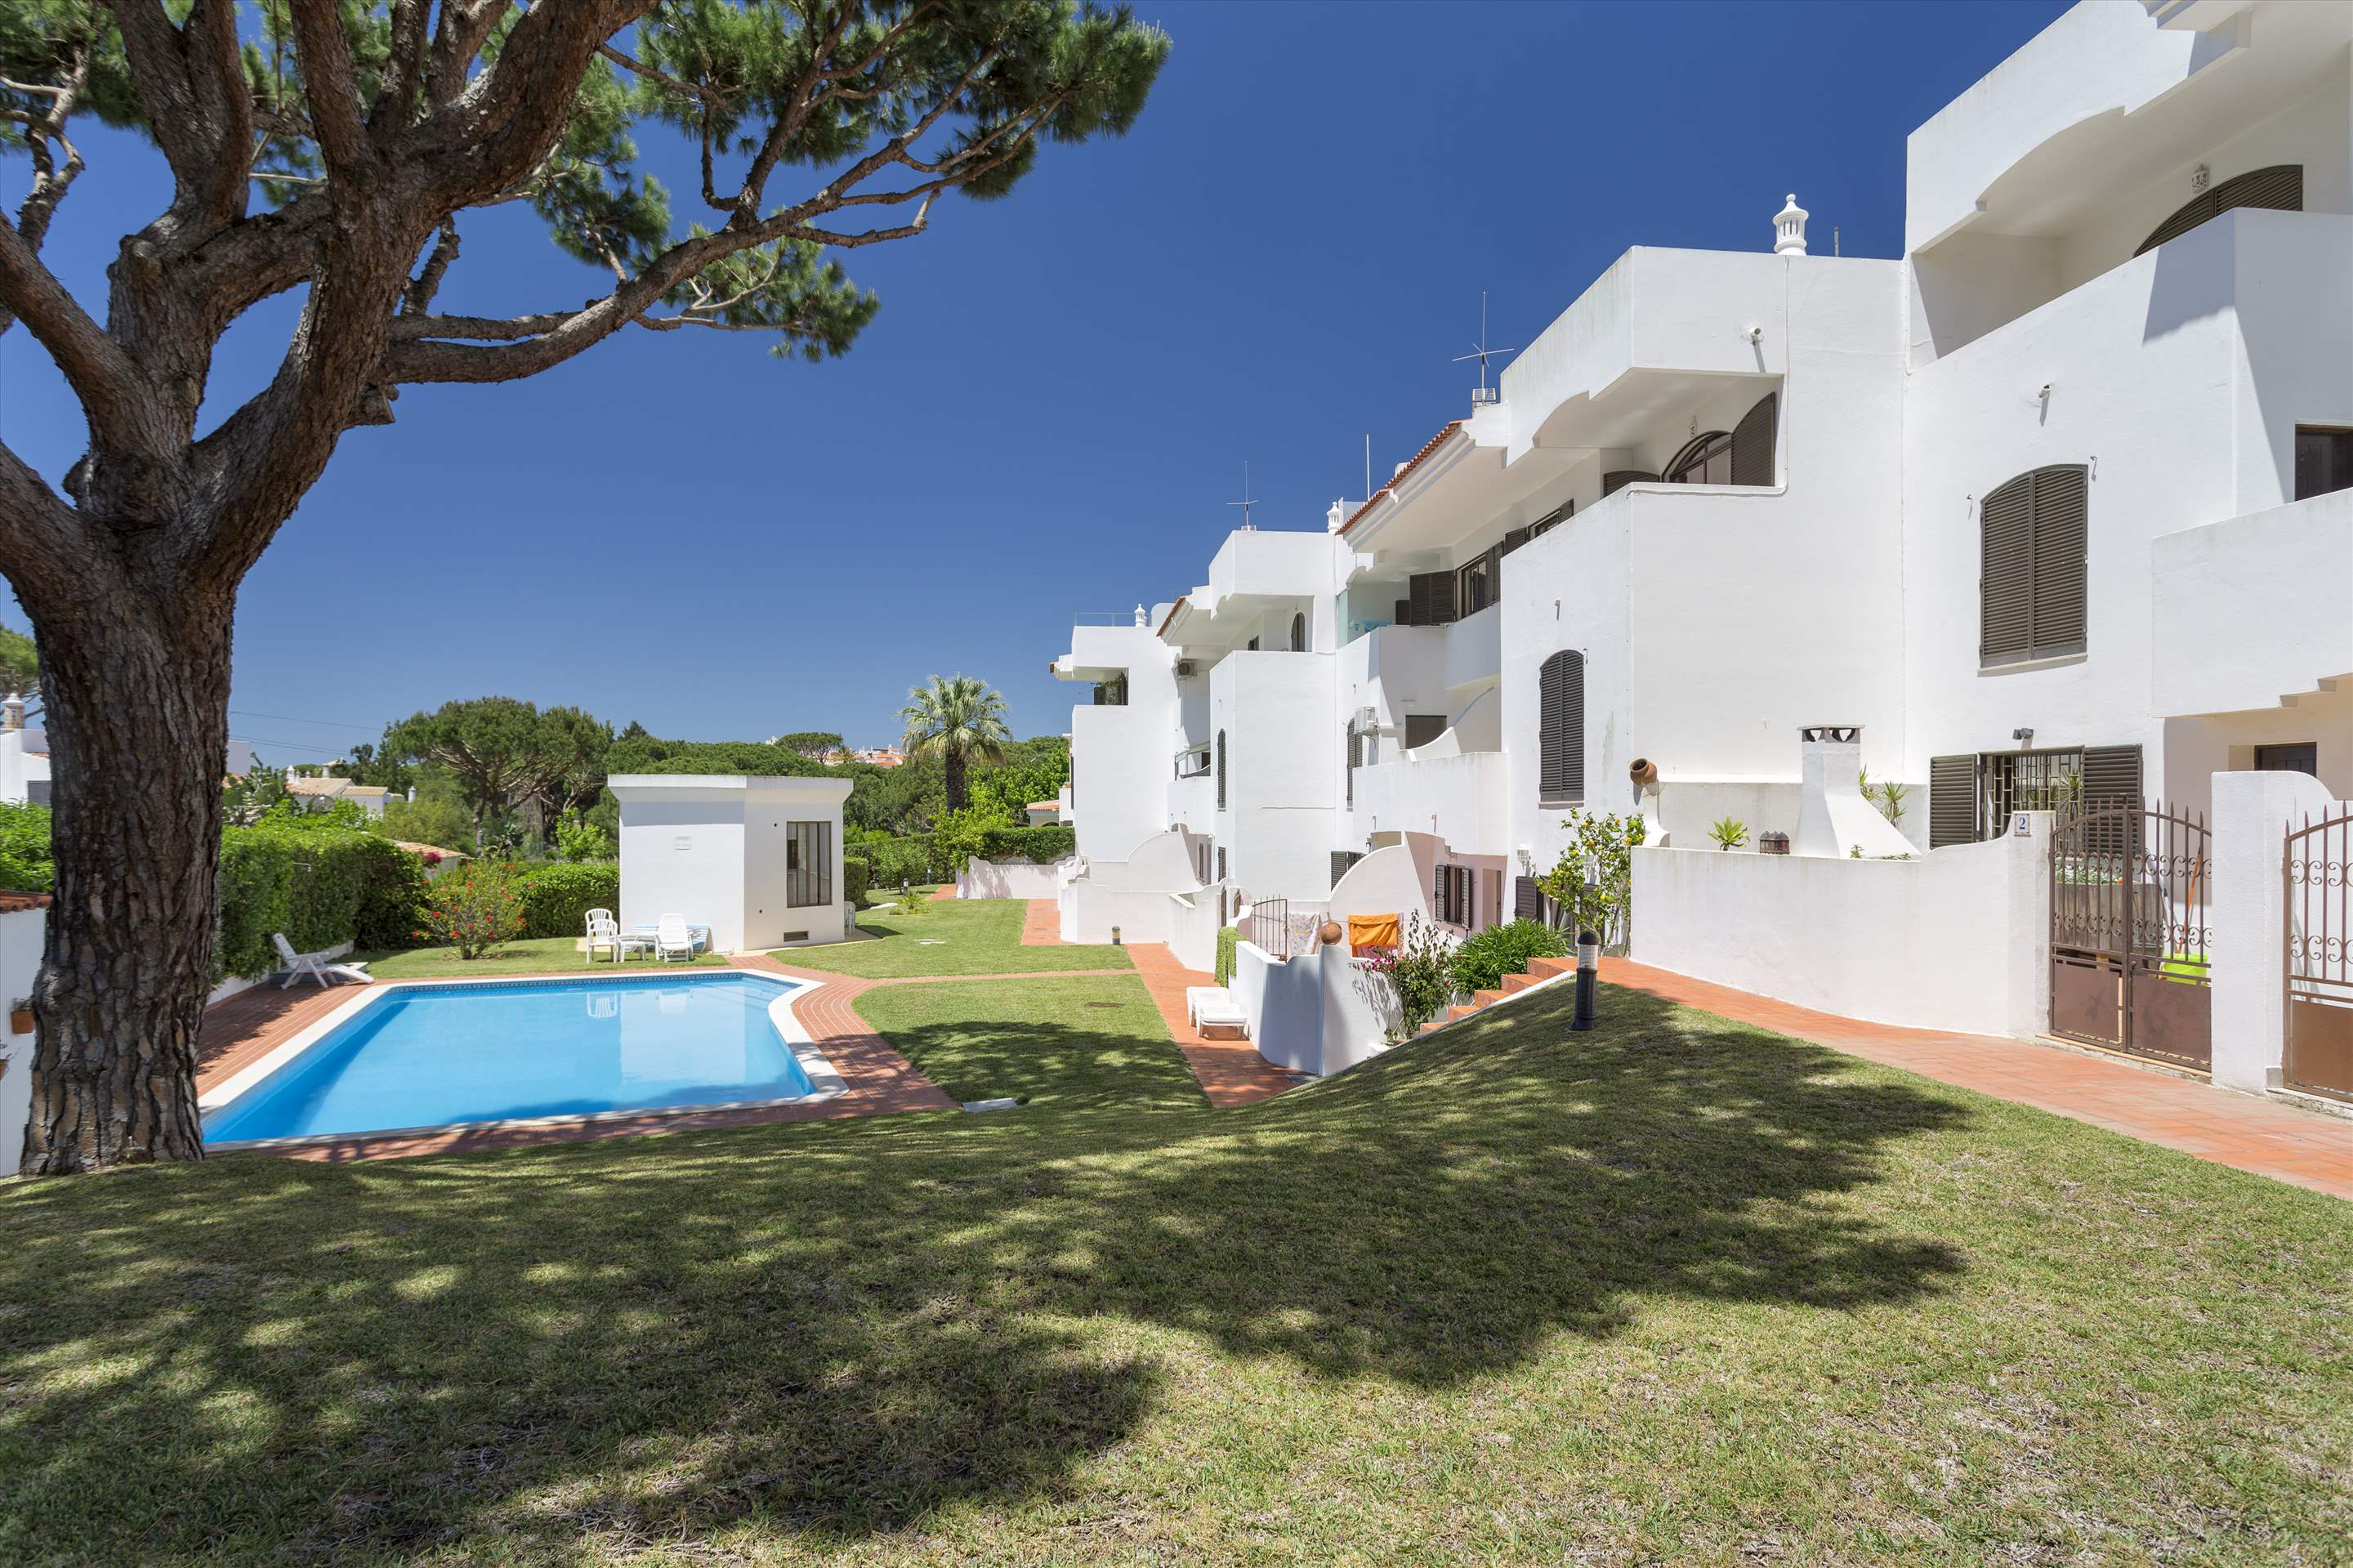 Apartment Jardim do Mar, 2 bedroom apartment in Vilamoura Area, Algarve Photo #6